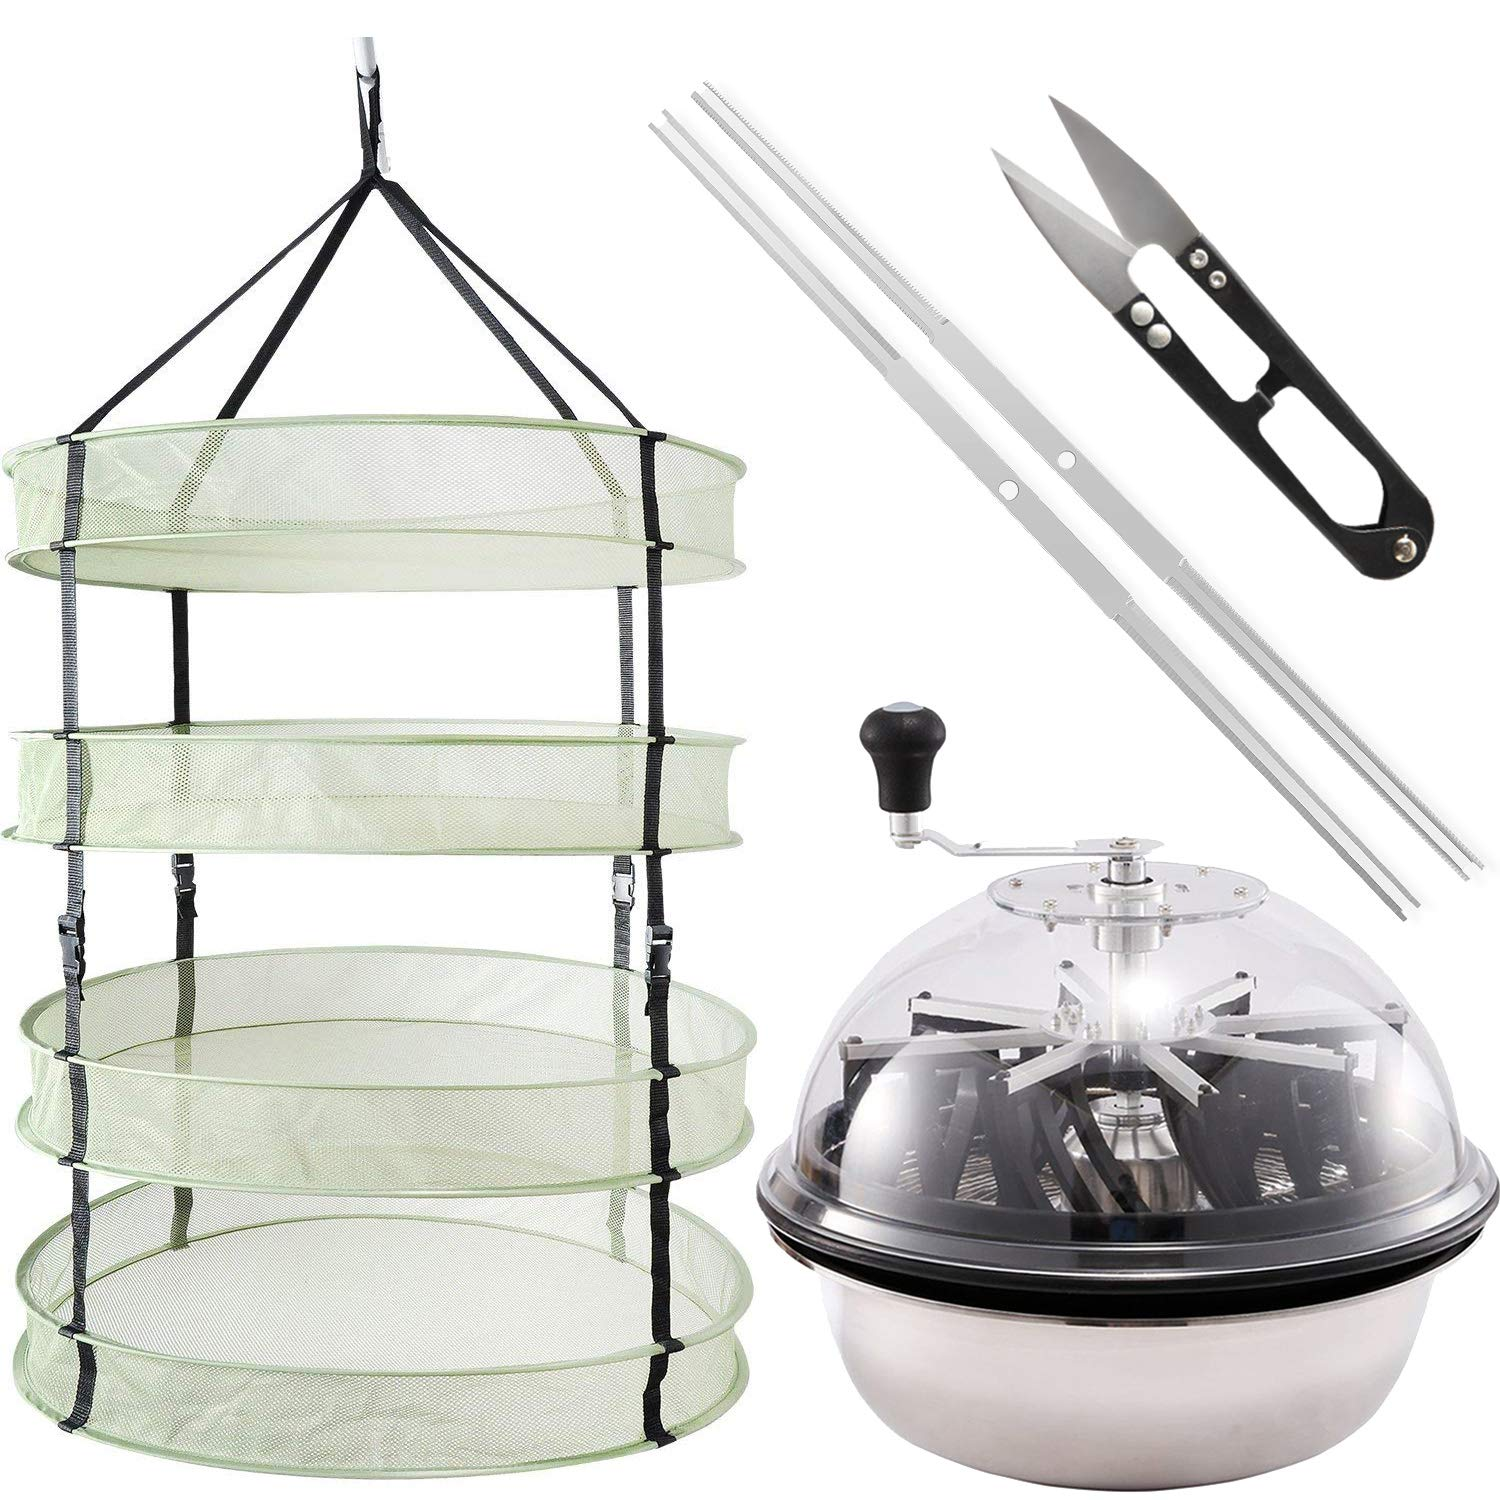 iPower GLTRIMBOWL16MDRYRD2L4 16-Inch Leaf Bowl Trimmer Twisted Spin Cut for Plant Bud and 2 Feet Diameter with 4 Layers Clip on Hanging Herb Drying Rack Net by iPower